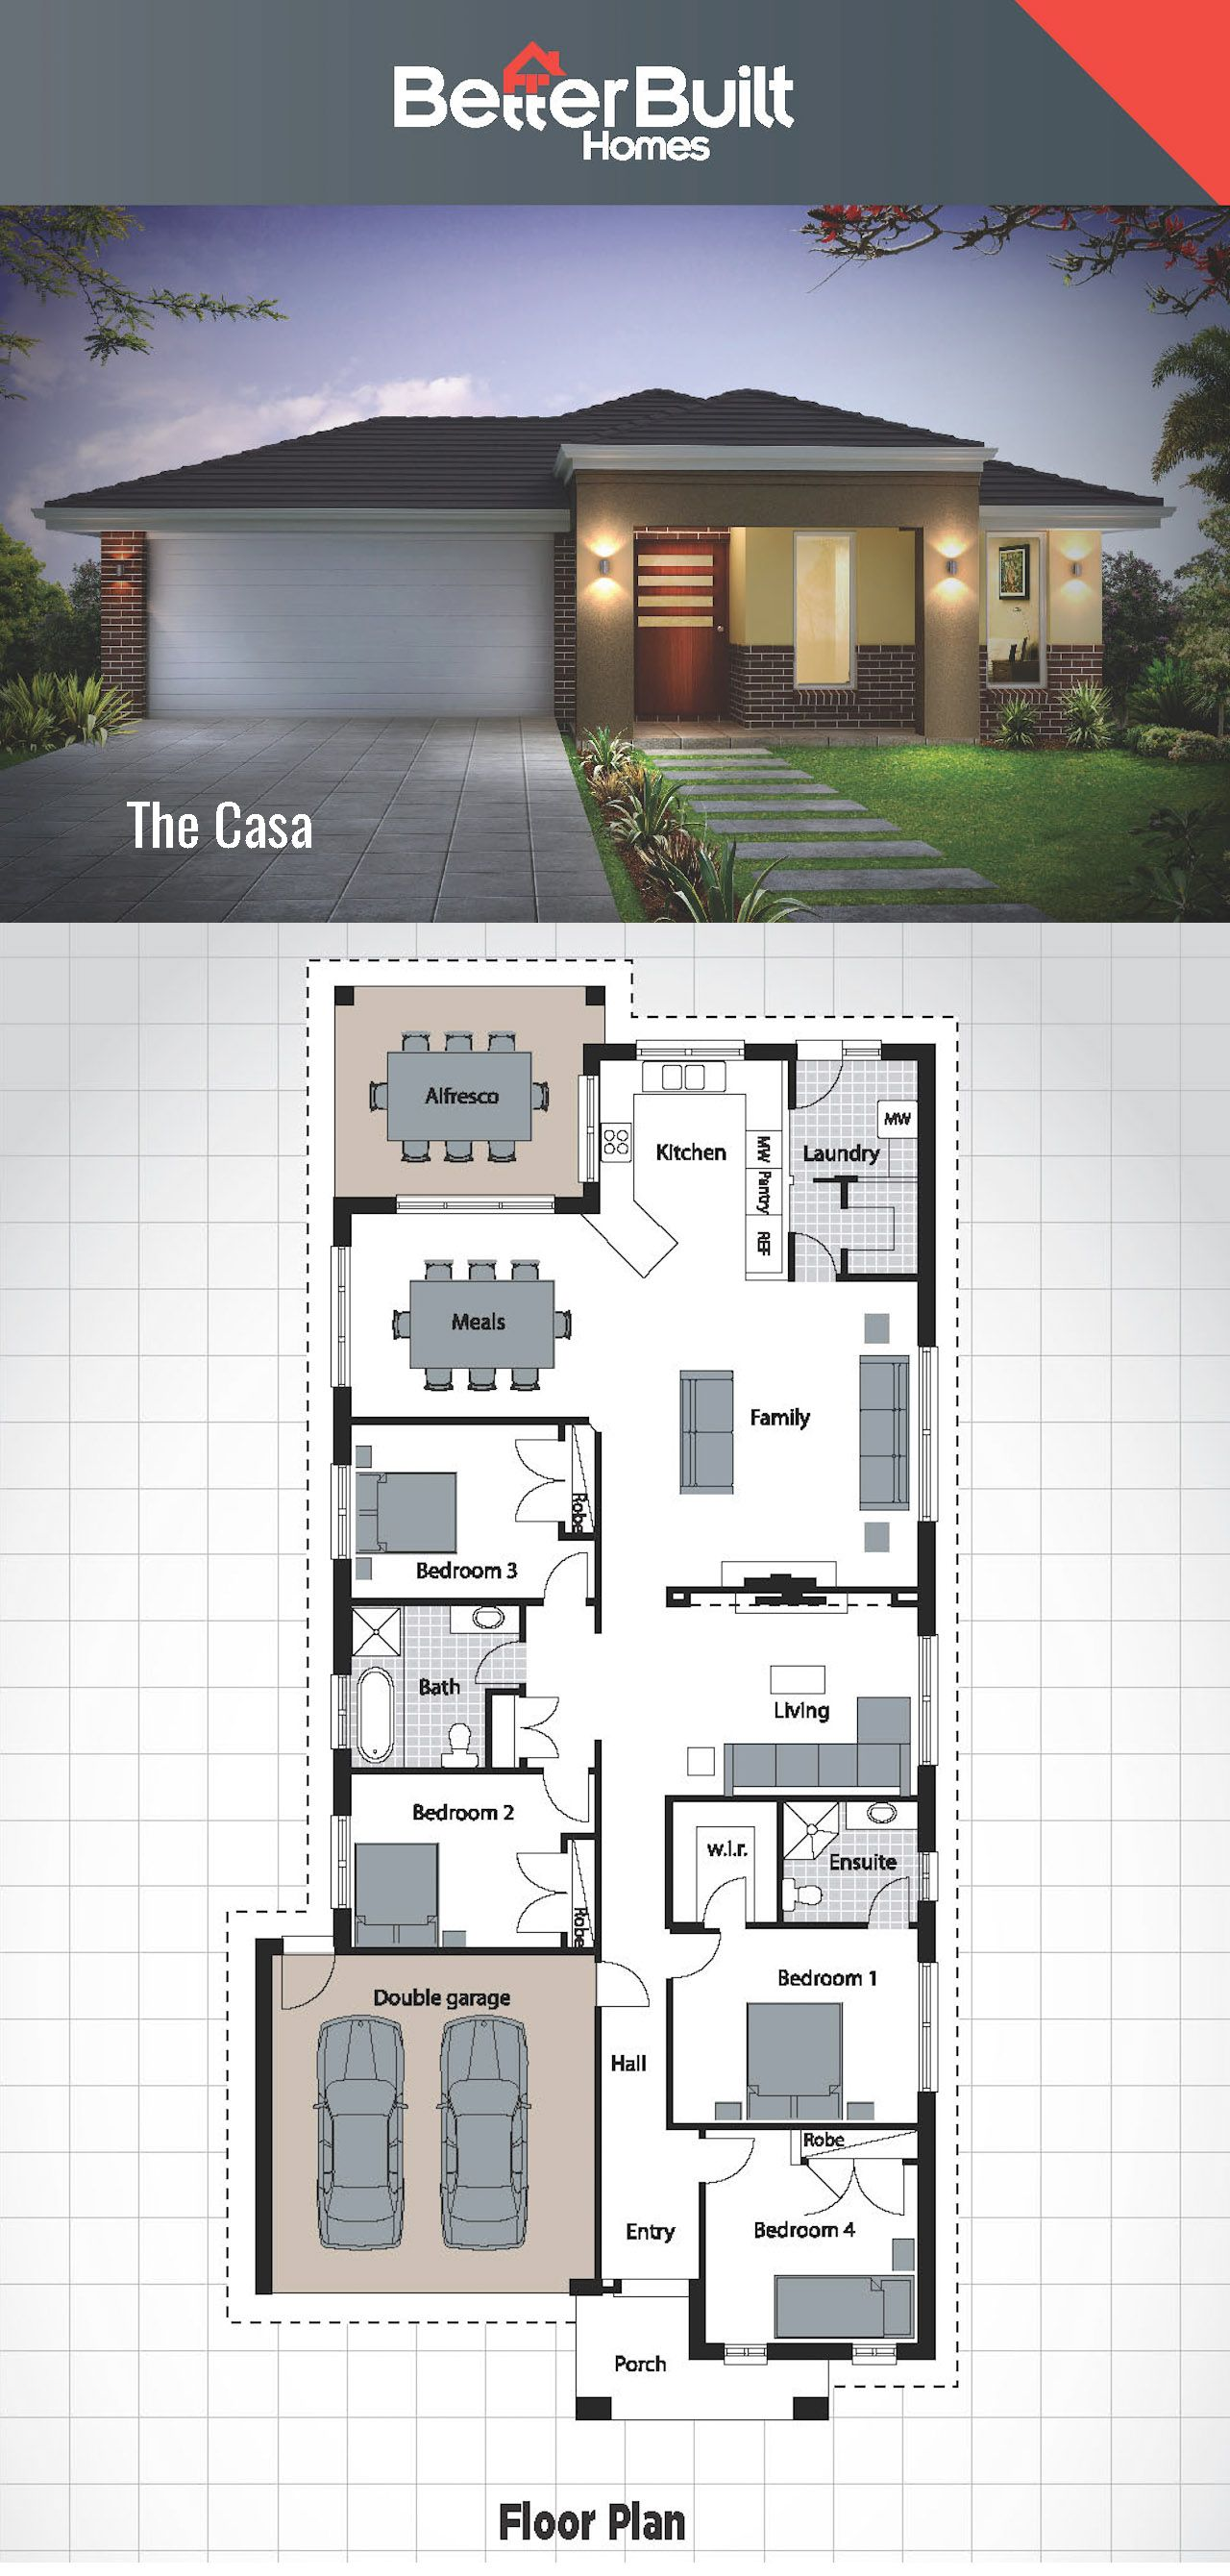 The Casa House Design Single Storey Delight Betterbuilt Floorplans Houseplans Onestorey Housedesigns House Plans House Design Small House Plans